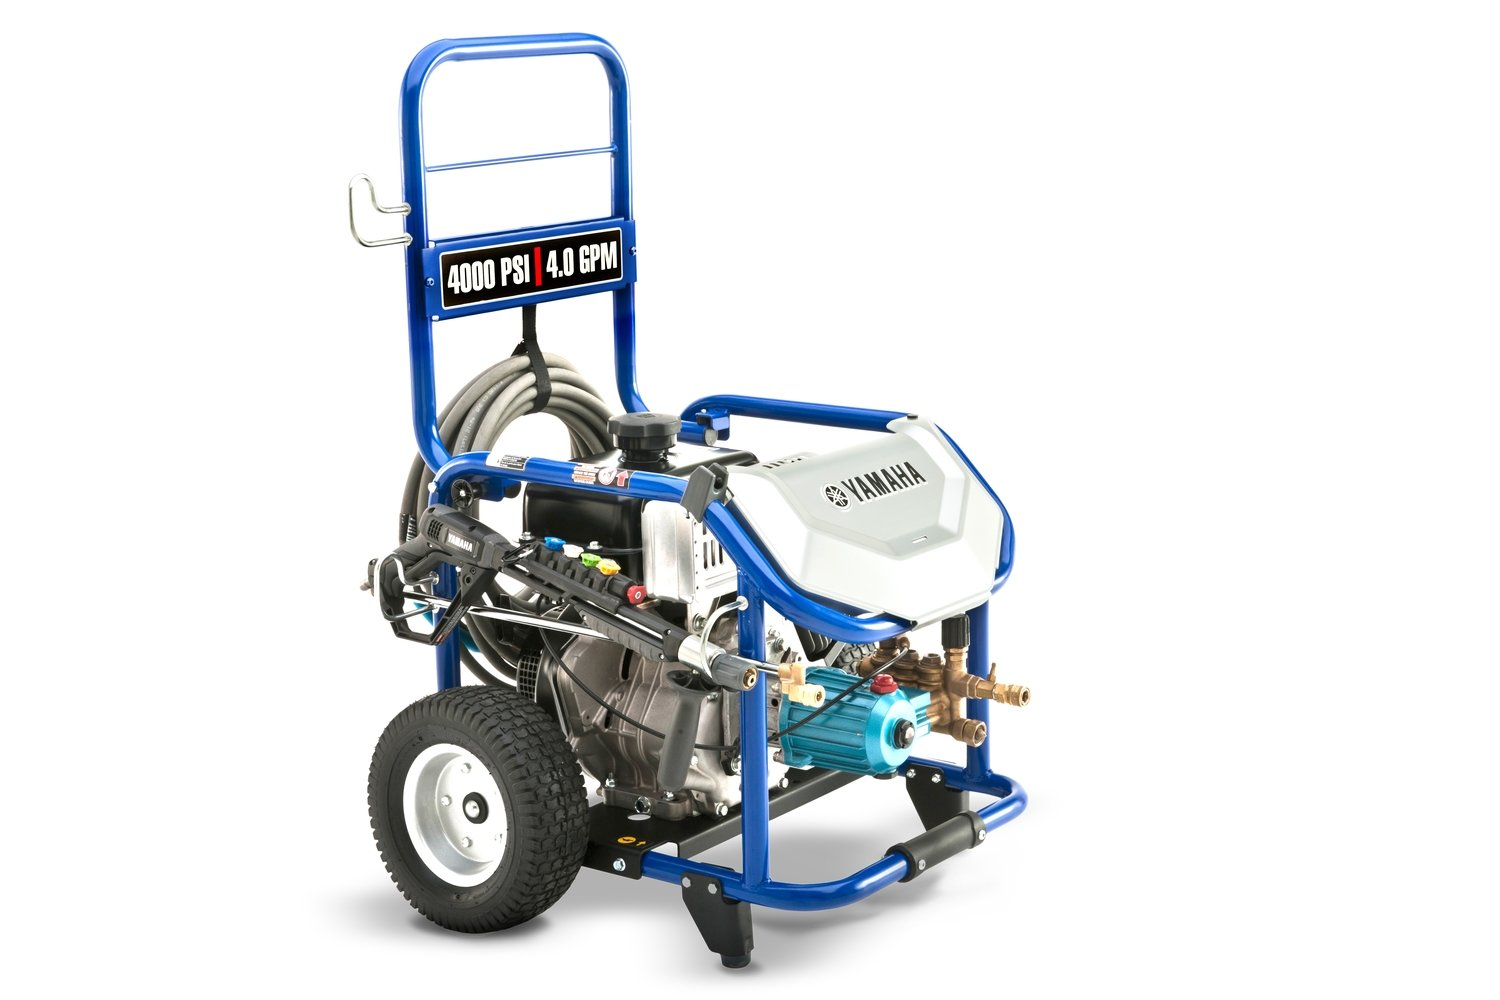 Yamaha® PW4040 Pressure Washer